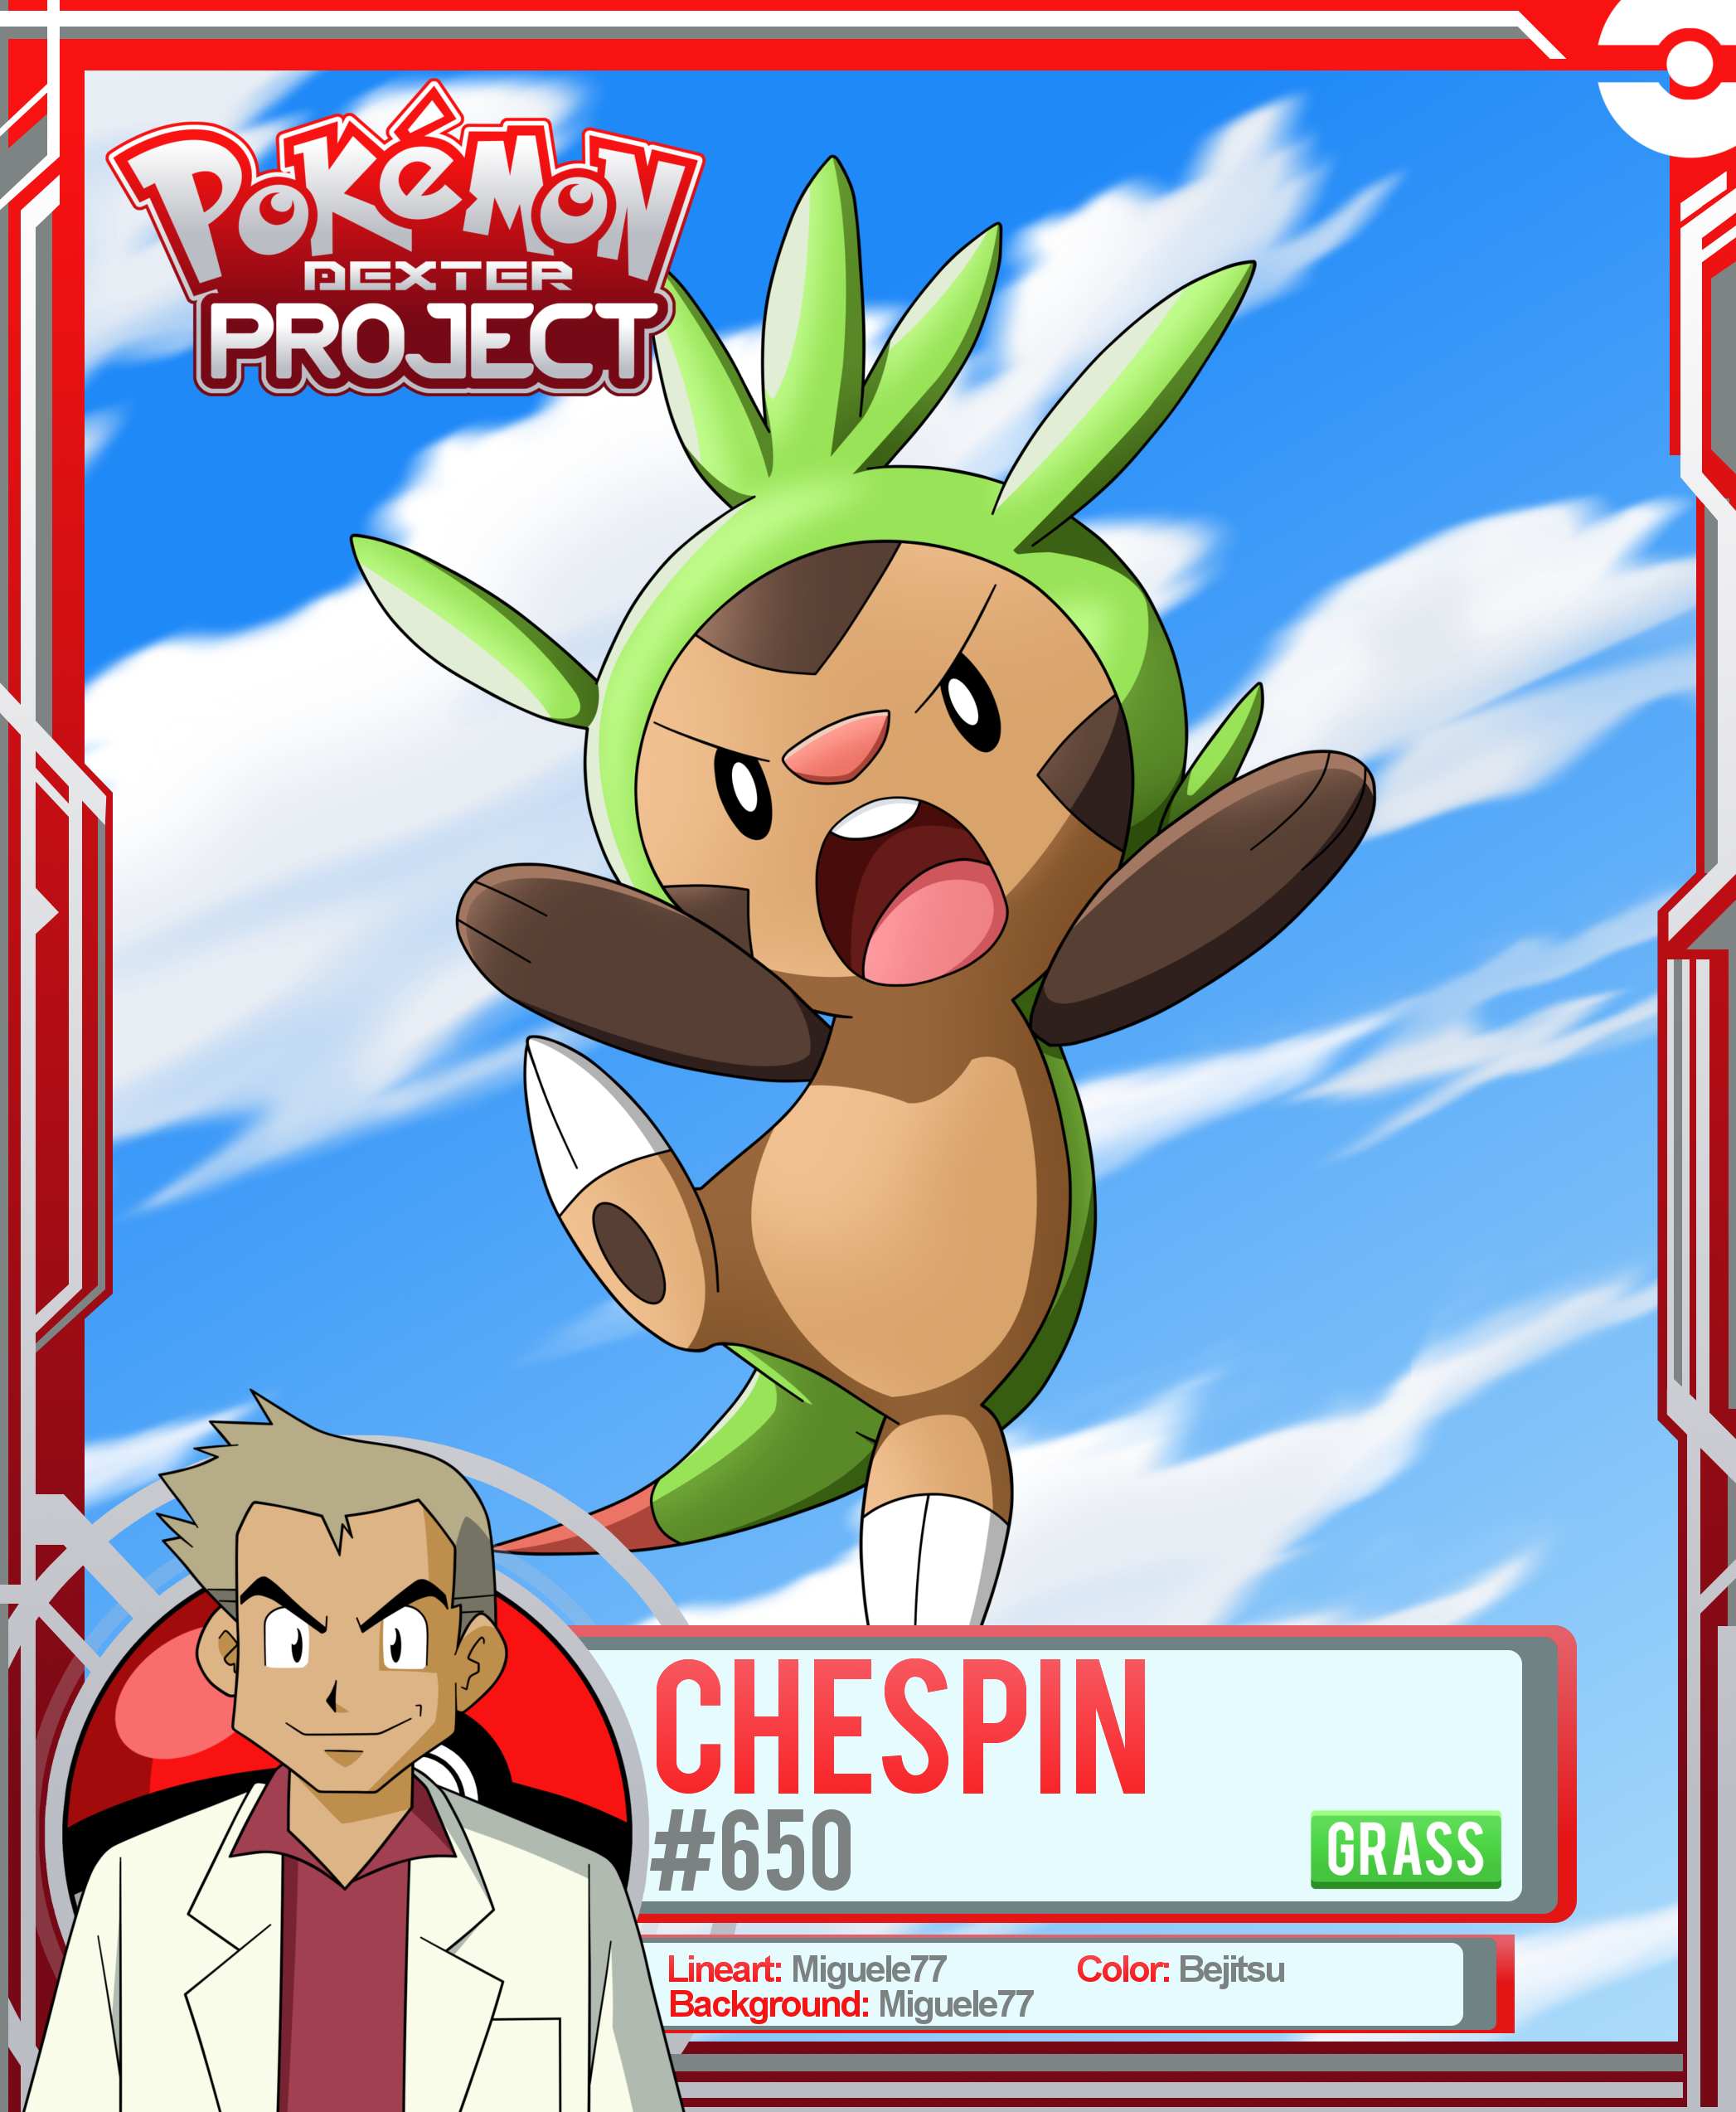 Pokemon - Chespin by PokemonDexterProject